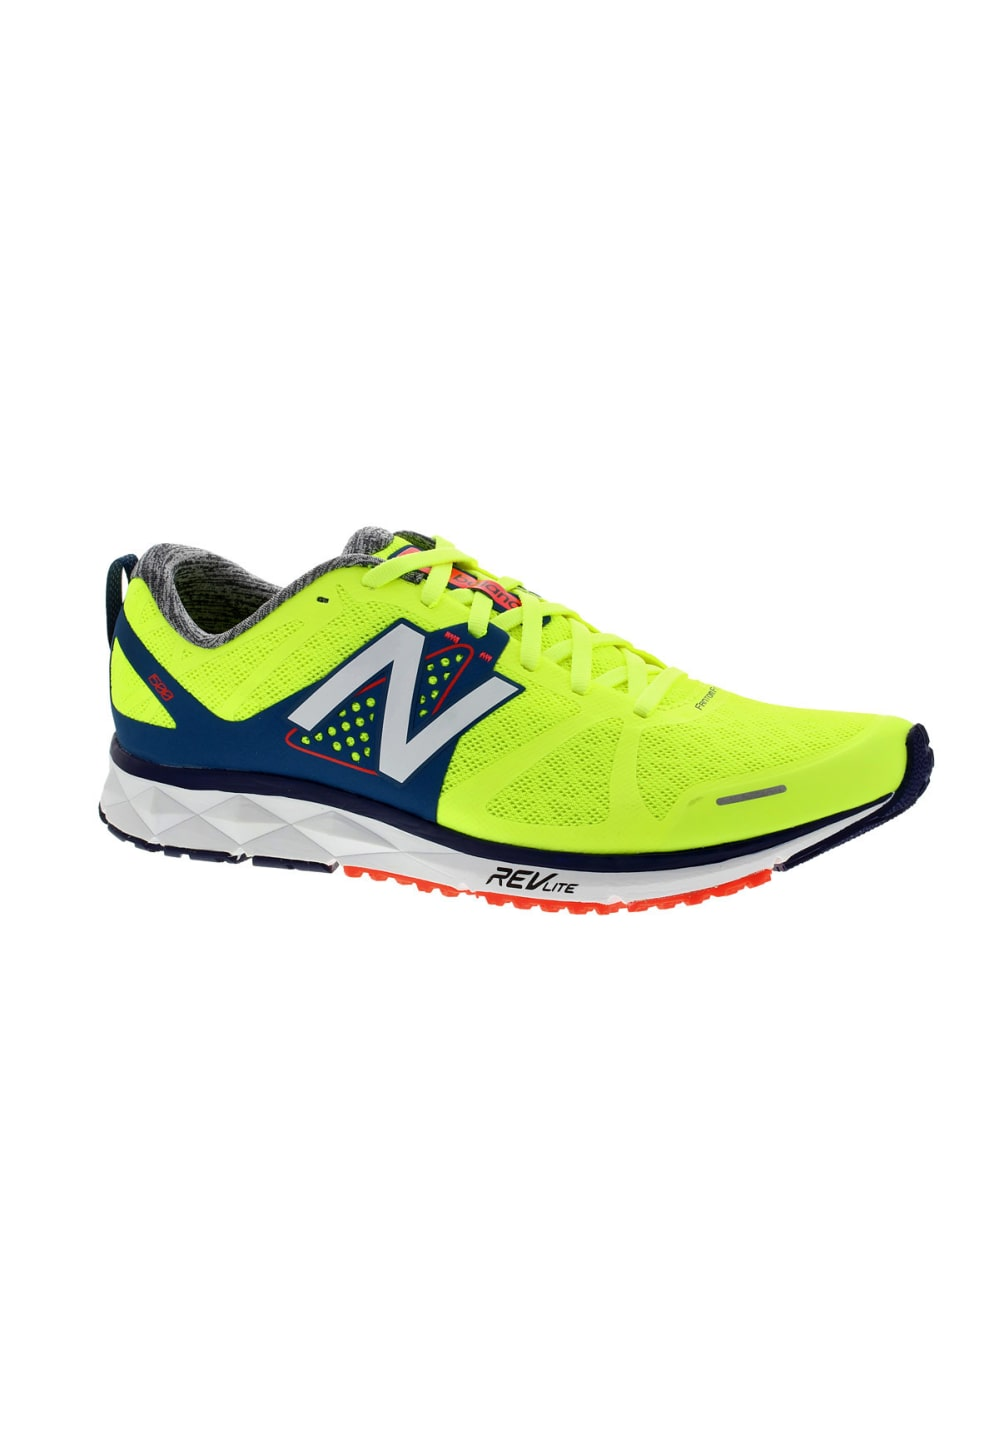 pas mal b580f c3812 New Balance M 1500 D - Chaussures running pour Homme - Jaune